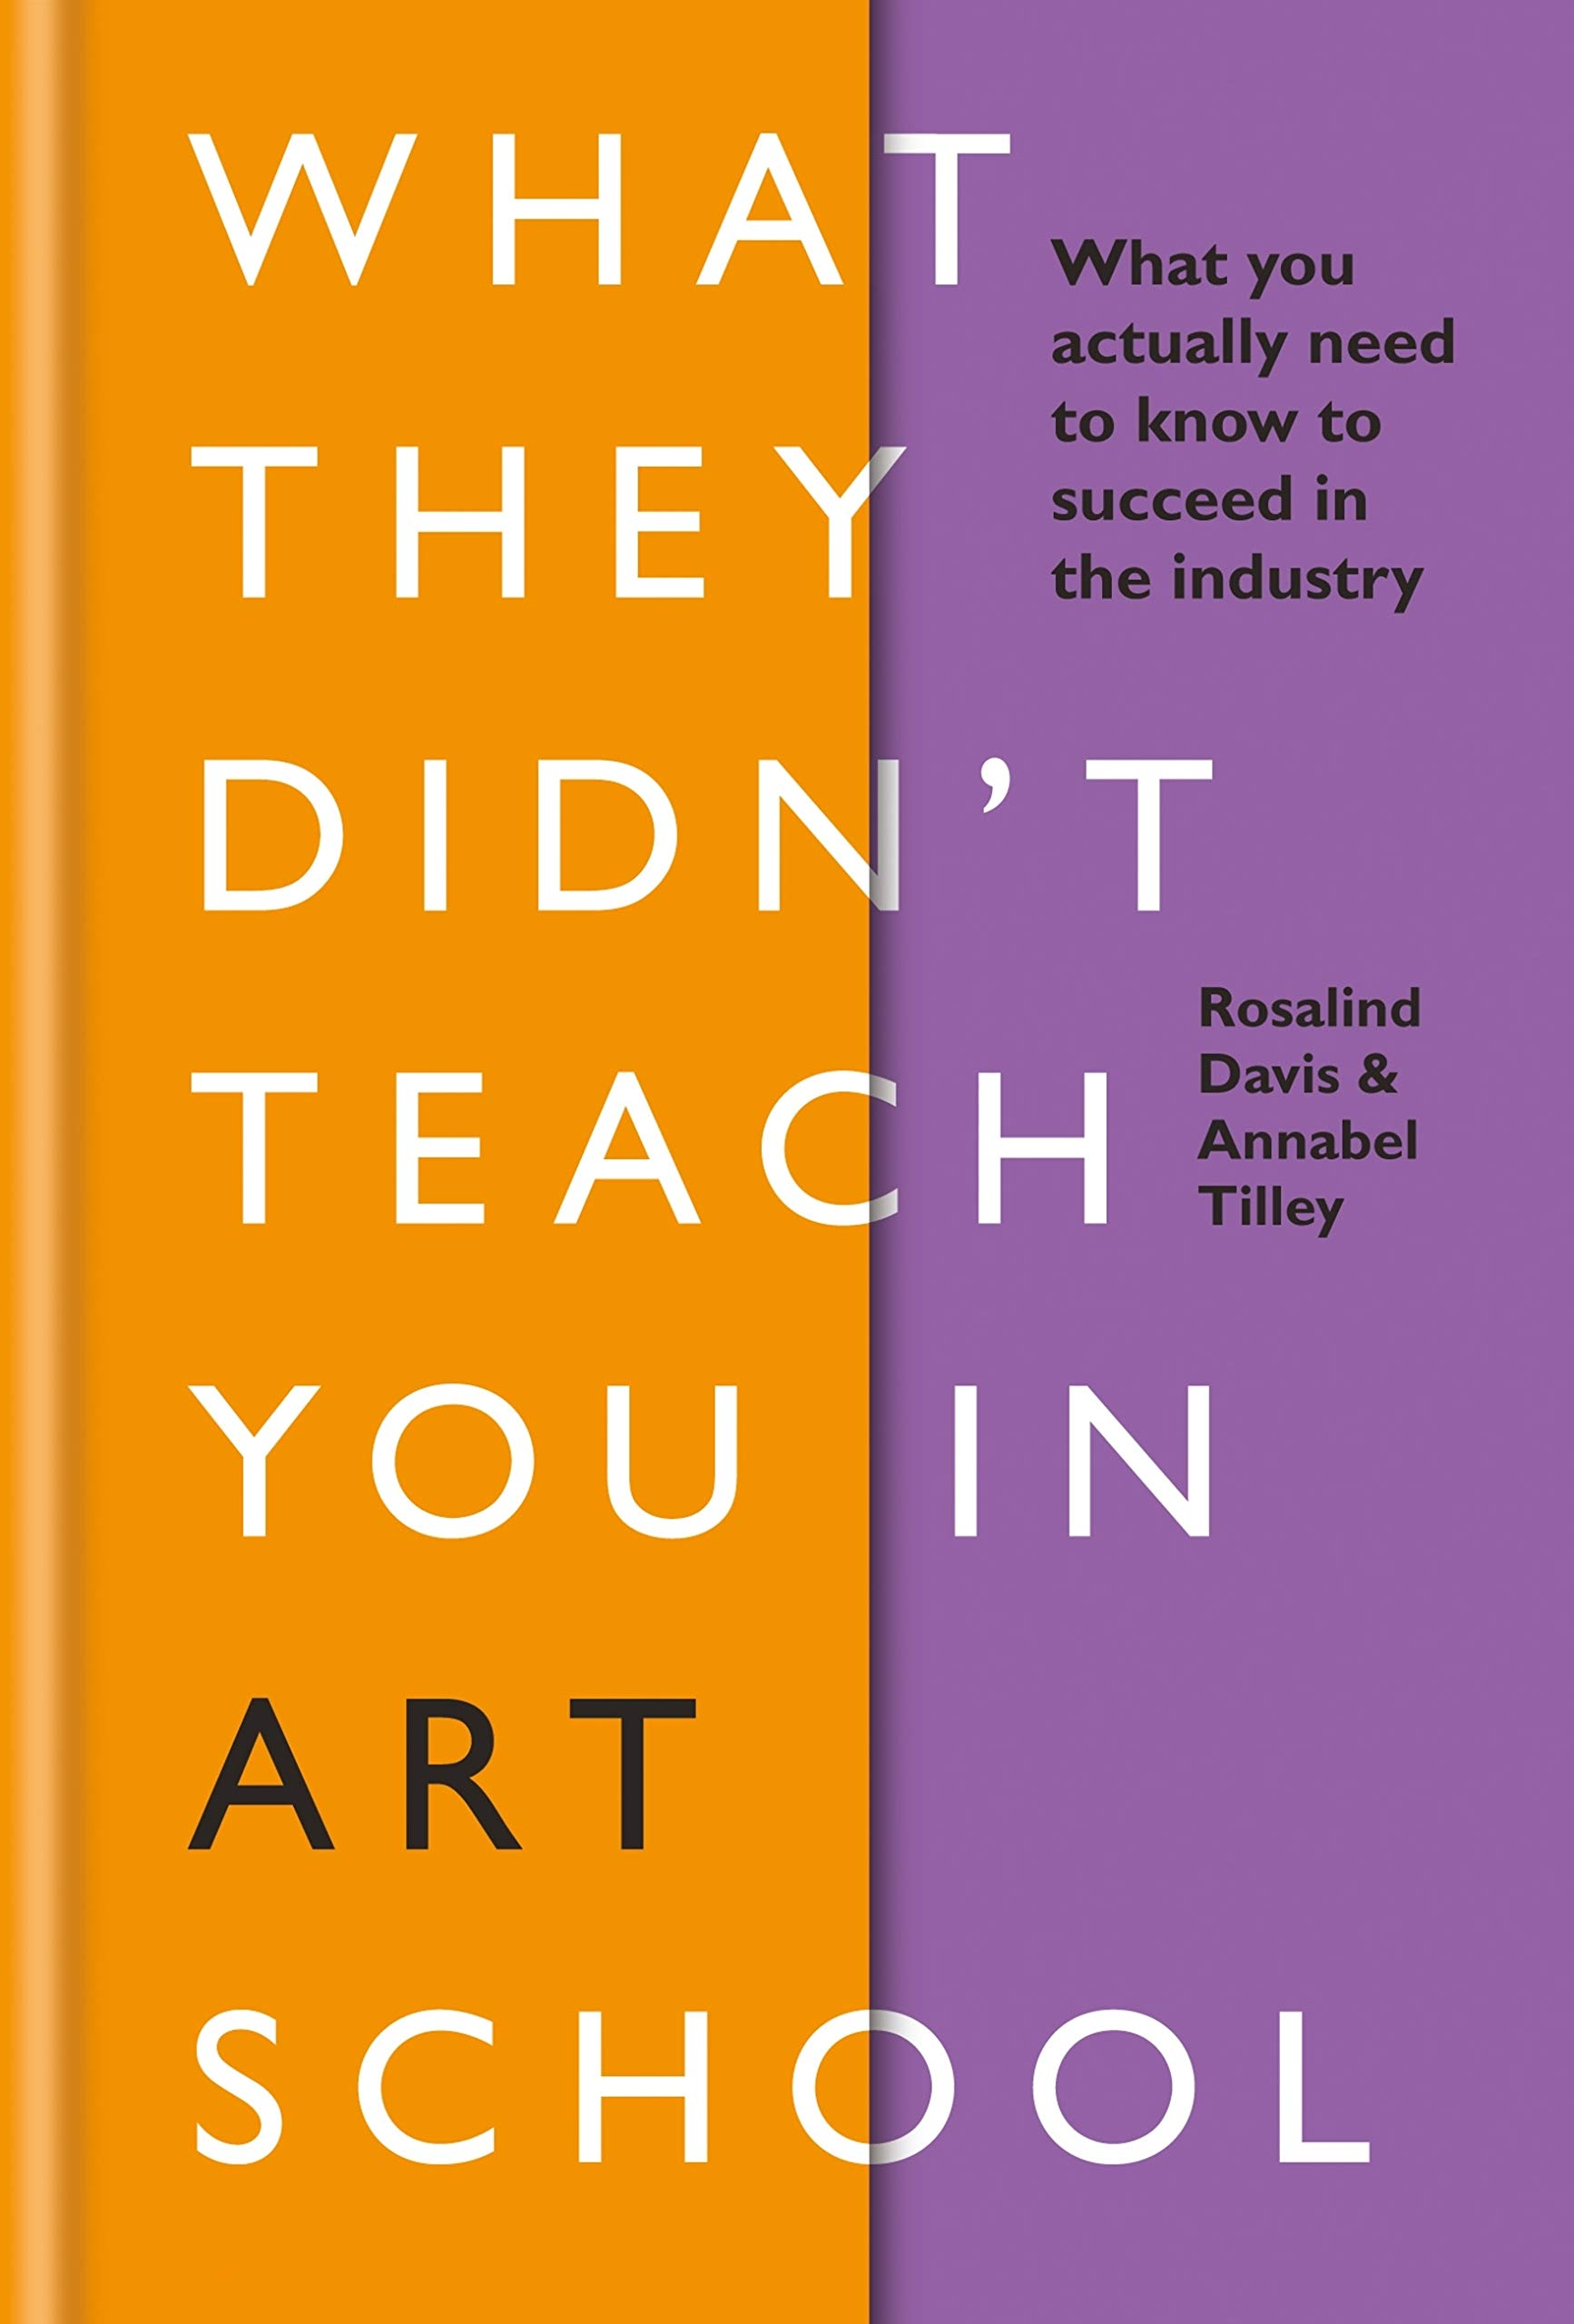 Image OfWhat They Didn't Teach You In Art School: What You Need To Know To Survive As An Artist (What They Didn't Teach You In Sch...